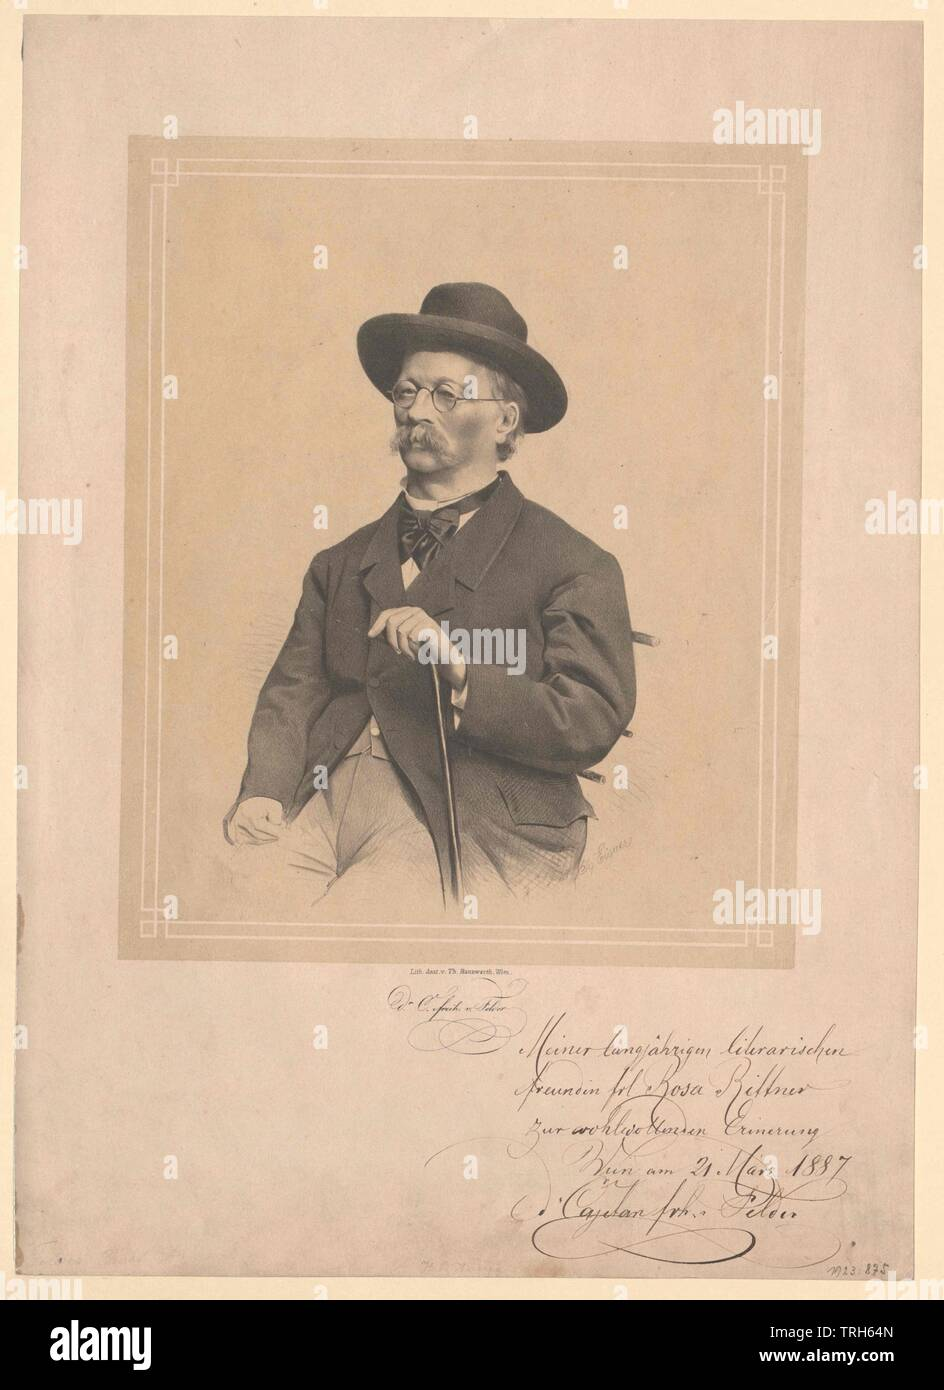 Felder, Cajetan Baron of (1814-1894), assemblymen, deputy, assemblyman, office holder, officeholder, office holders, officeholders, politics, policy, politician, politicians, people, half-length, half length, man, men, male, manly, 19th century, Additional-Rights-Clearance-Info-Not-Available - Stock Image